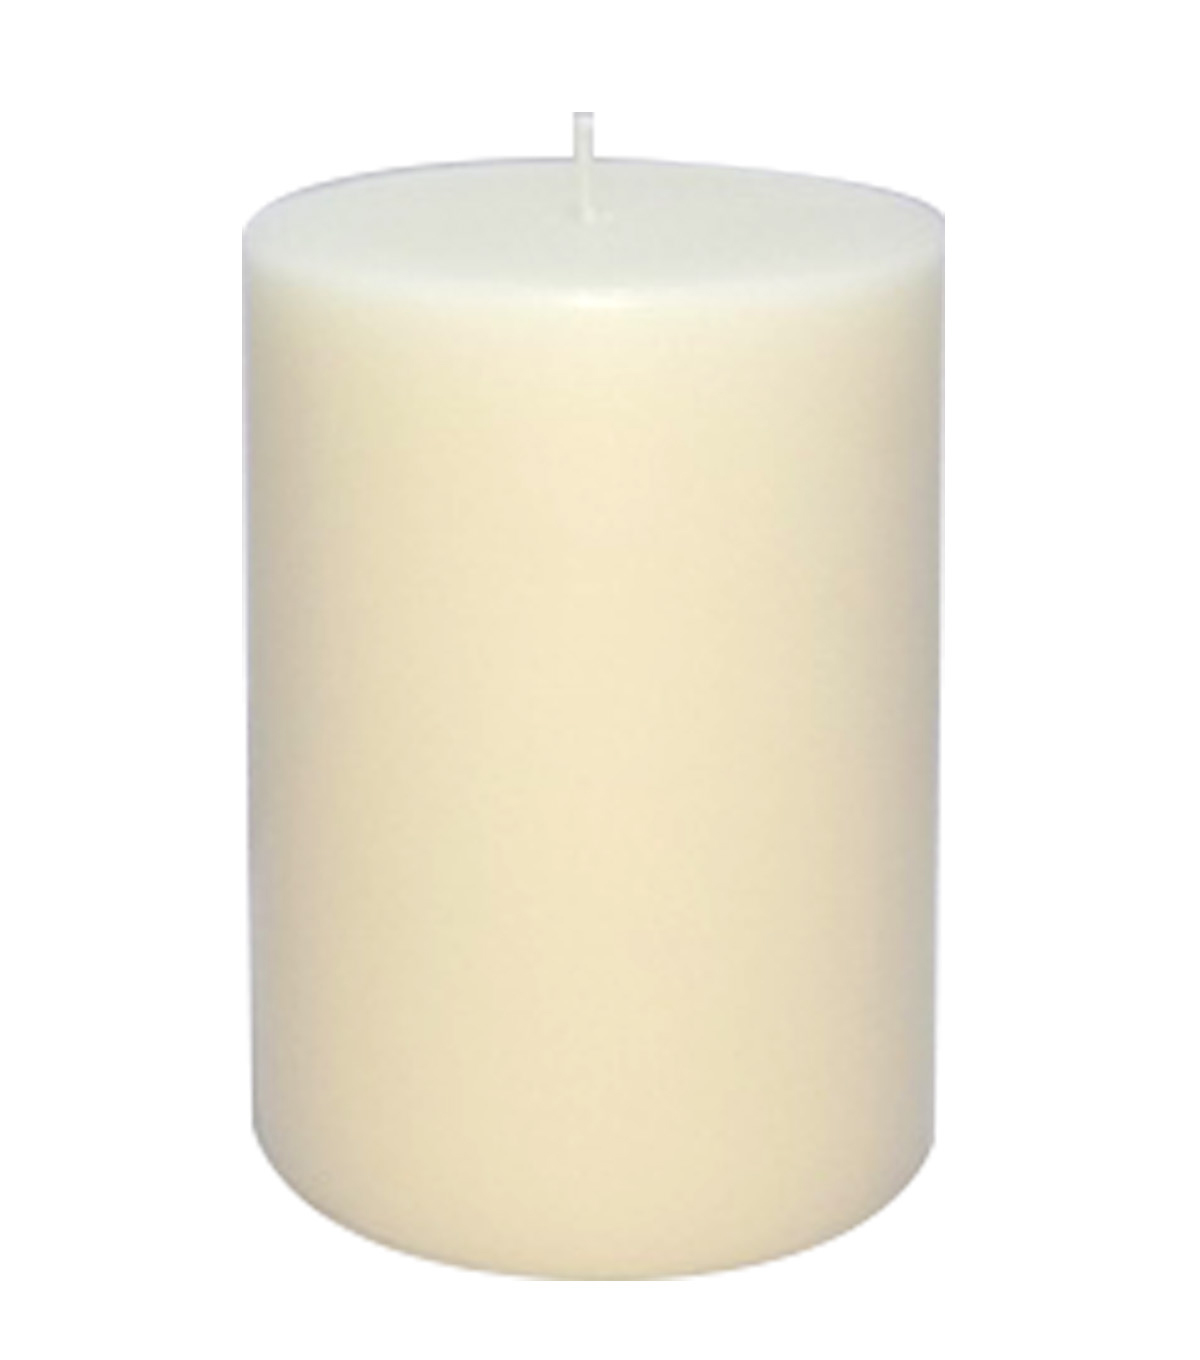 Maker\u0027s Holiday 3\u0027\u0027x4\u0027\u0027 Silver Birch Scented Pillar Candle-Cream